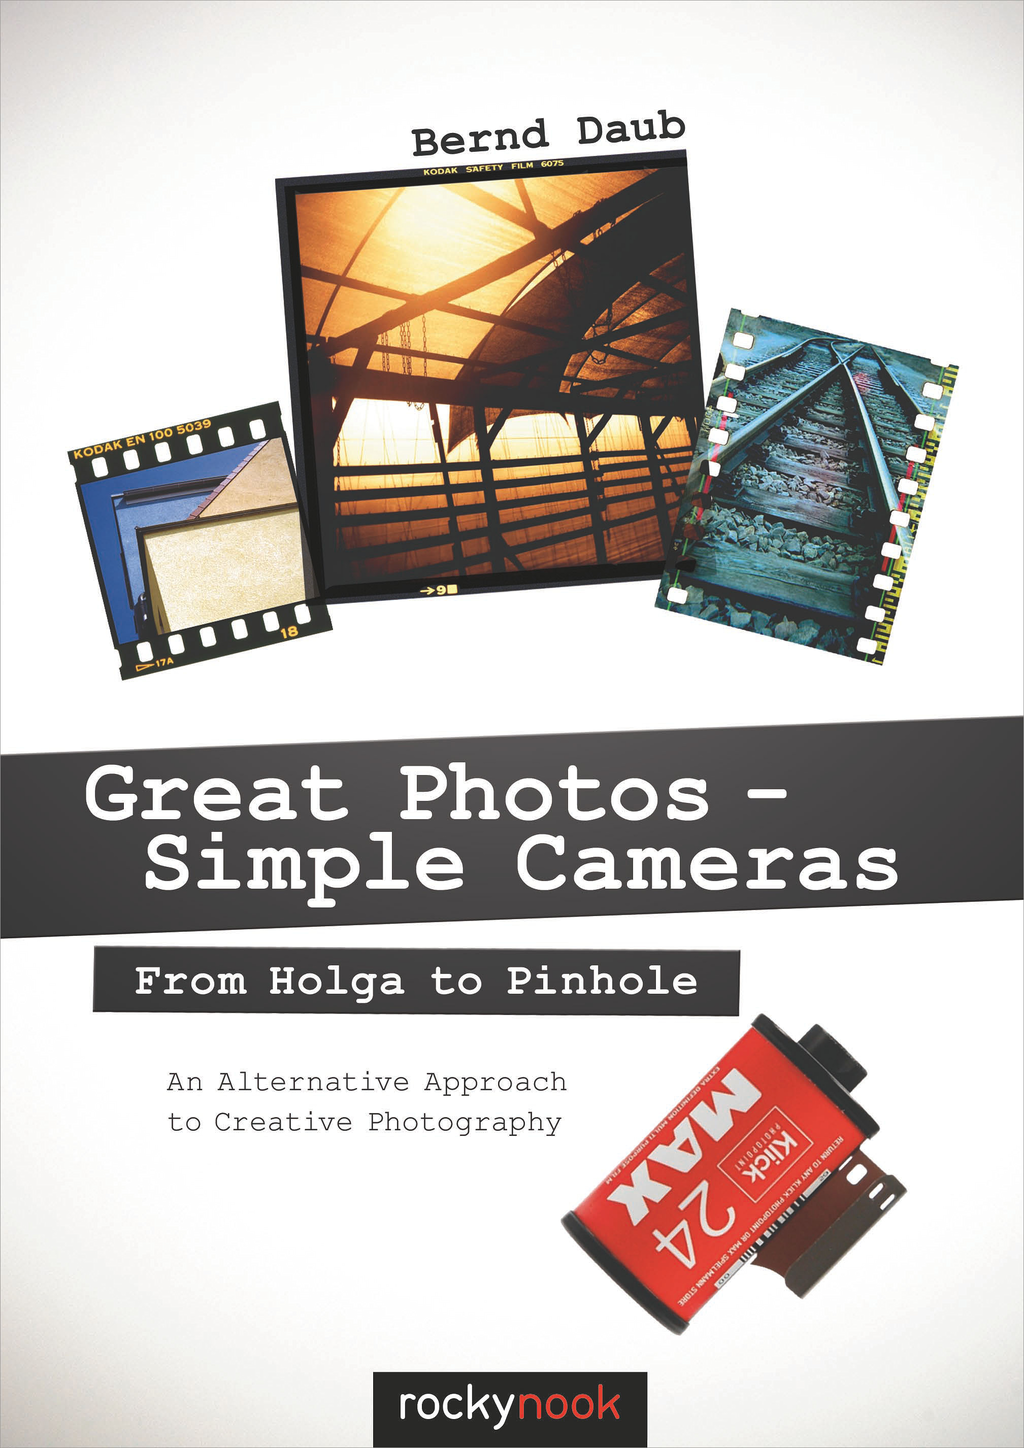 Great Photos - Simple Cameras By: Bernd Daub